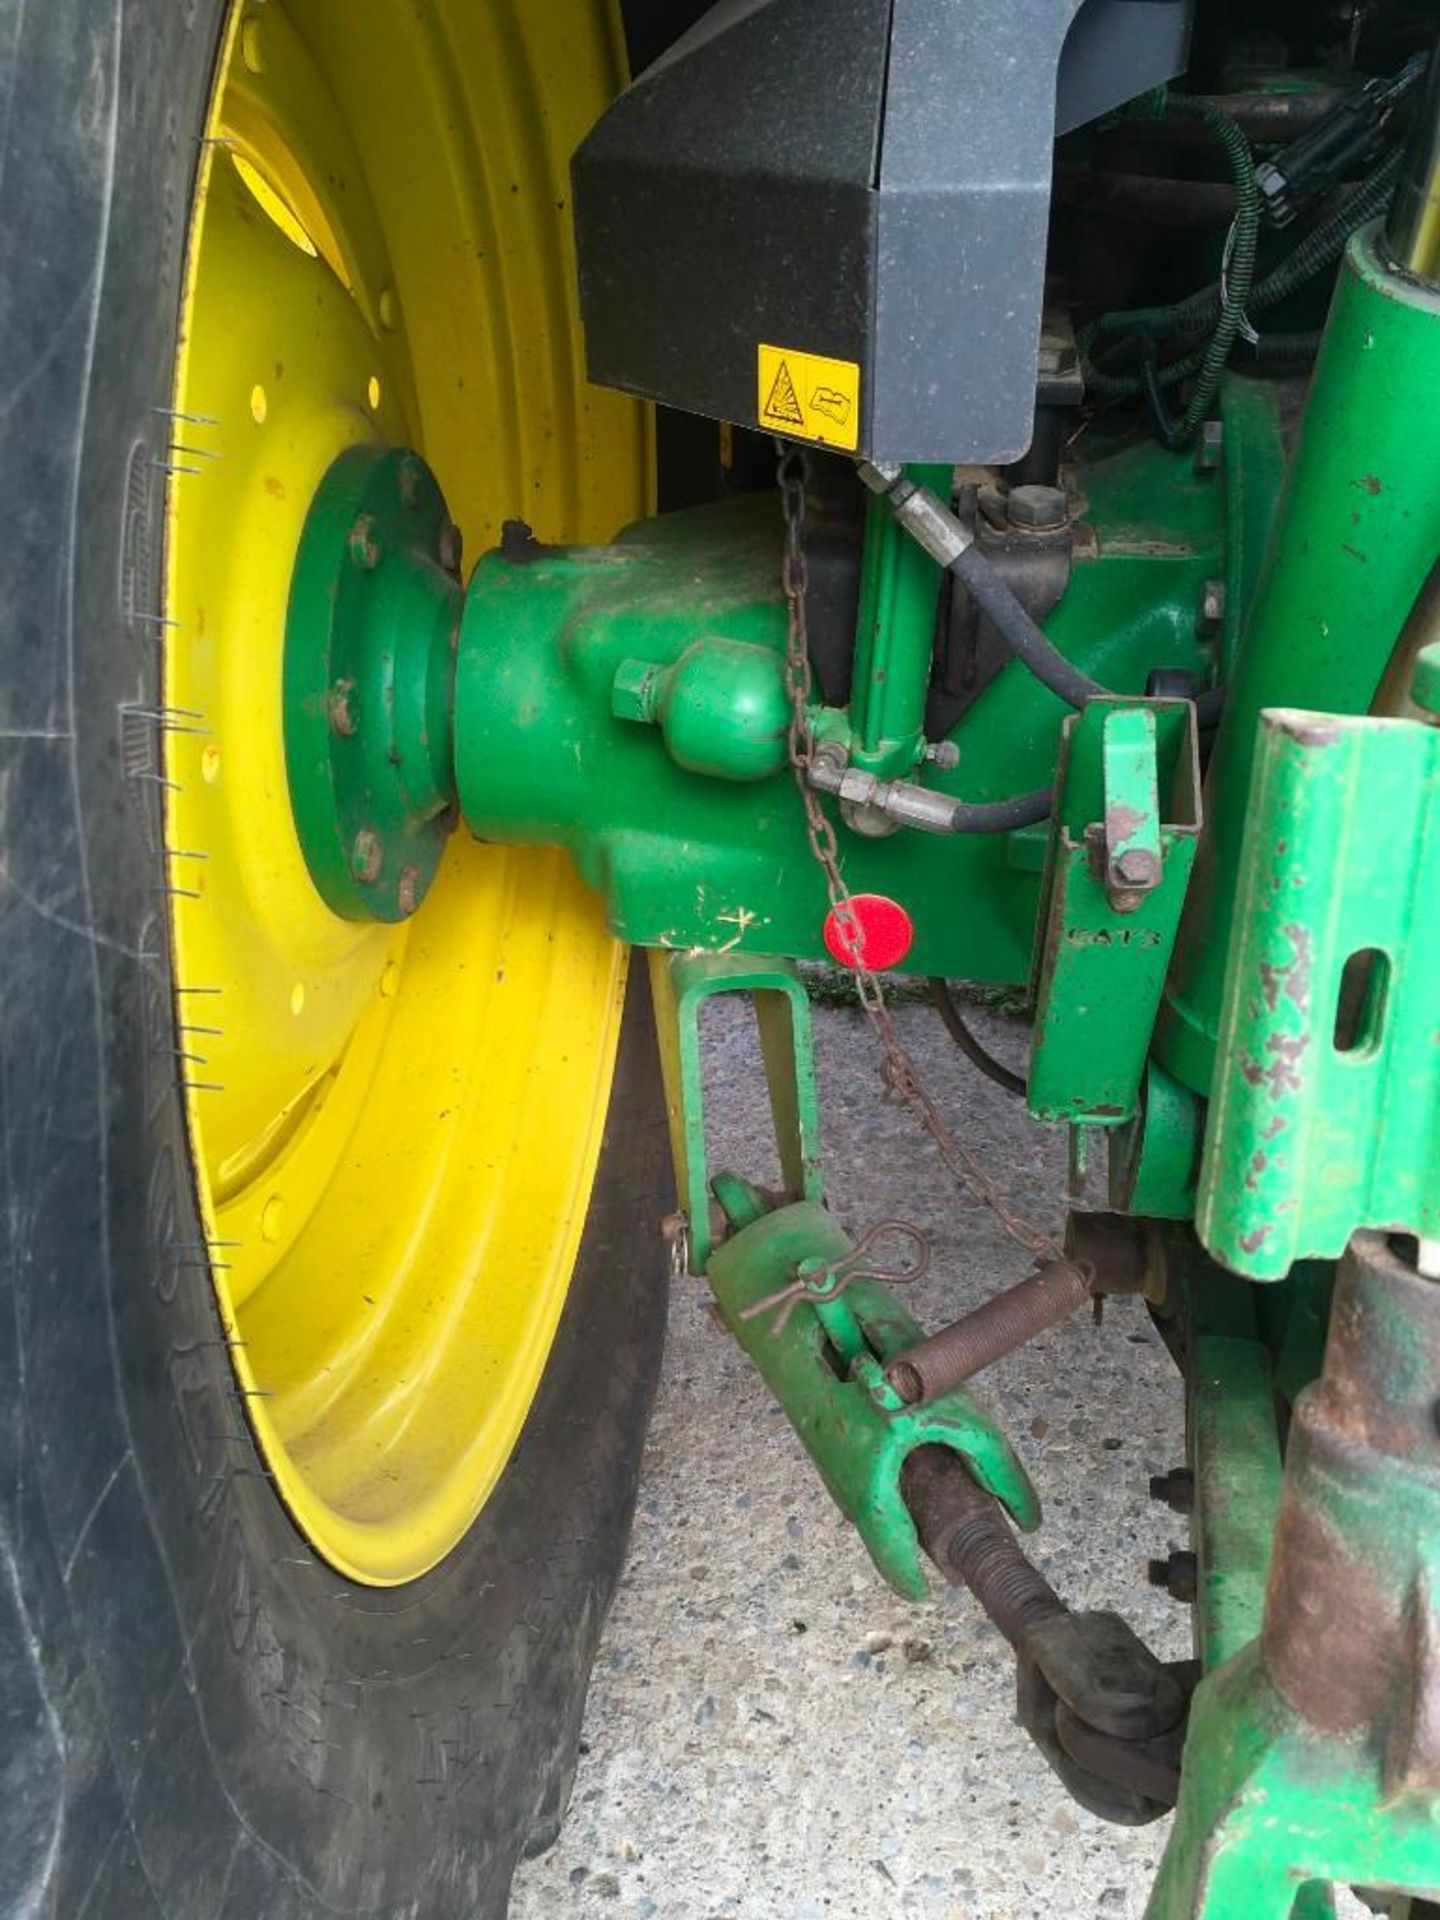 2008 John Deere 7530 tractor with auto quad gear box, 4 spool valves, pick up hitch, air seat, front - Image 10 of 14